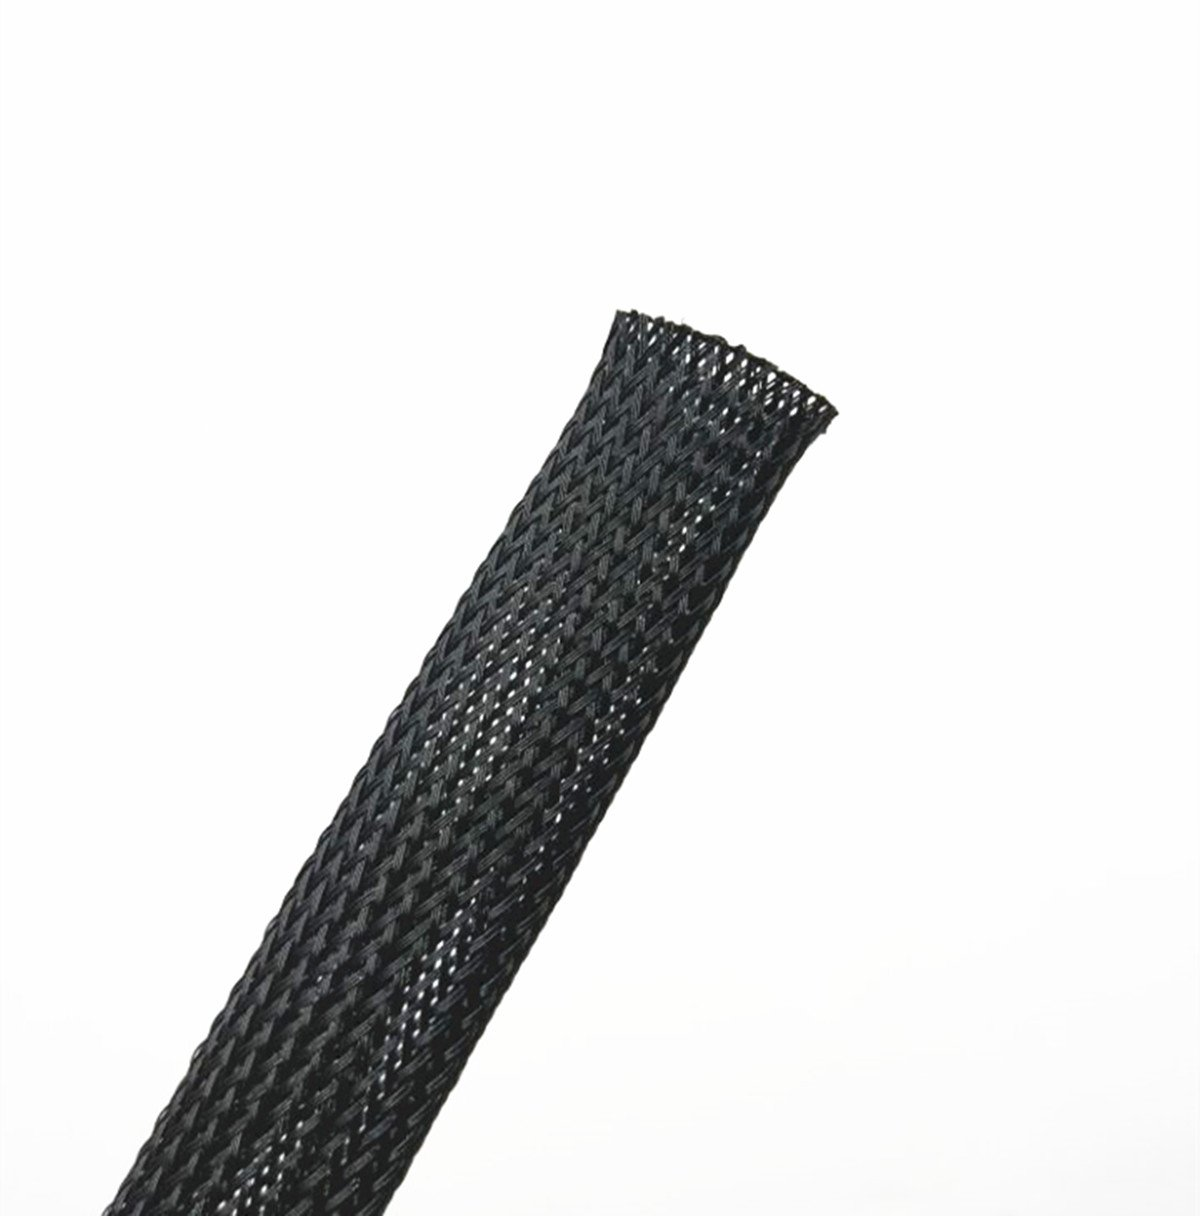 Wang-Data PET Black Braided Cable Sleeve 3/4 inch X 100ft (3/4'' X 100')